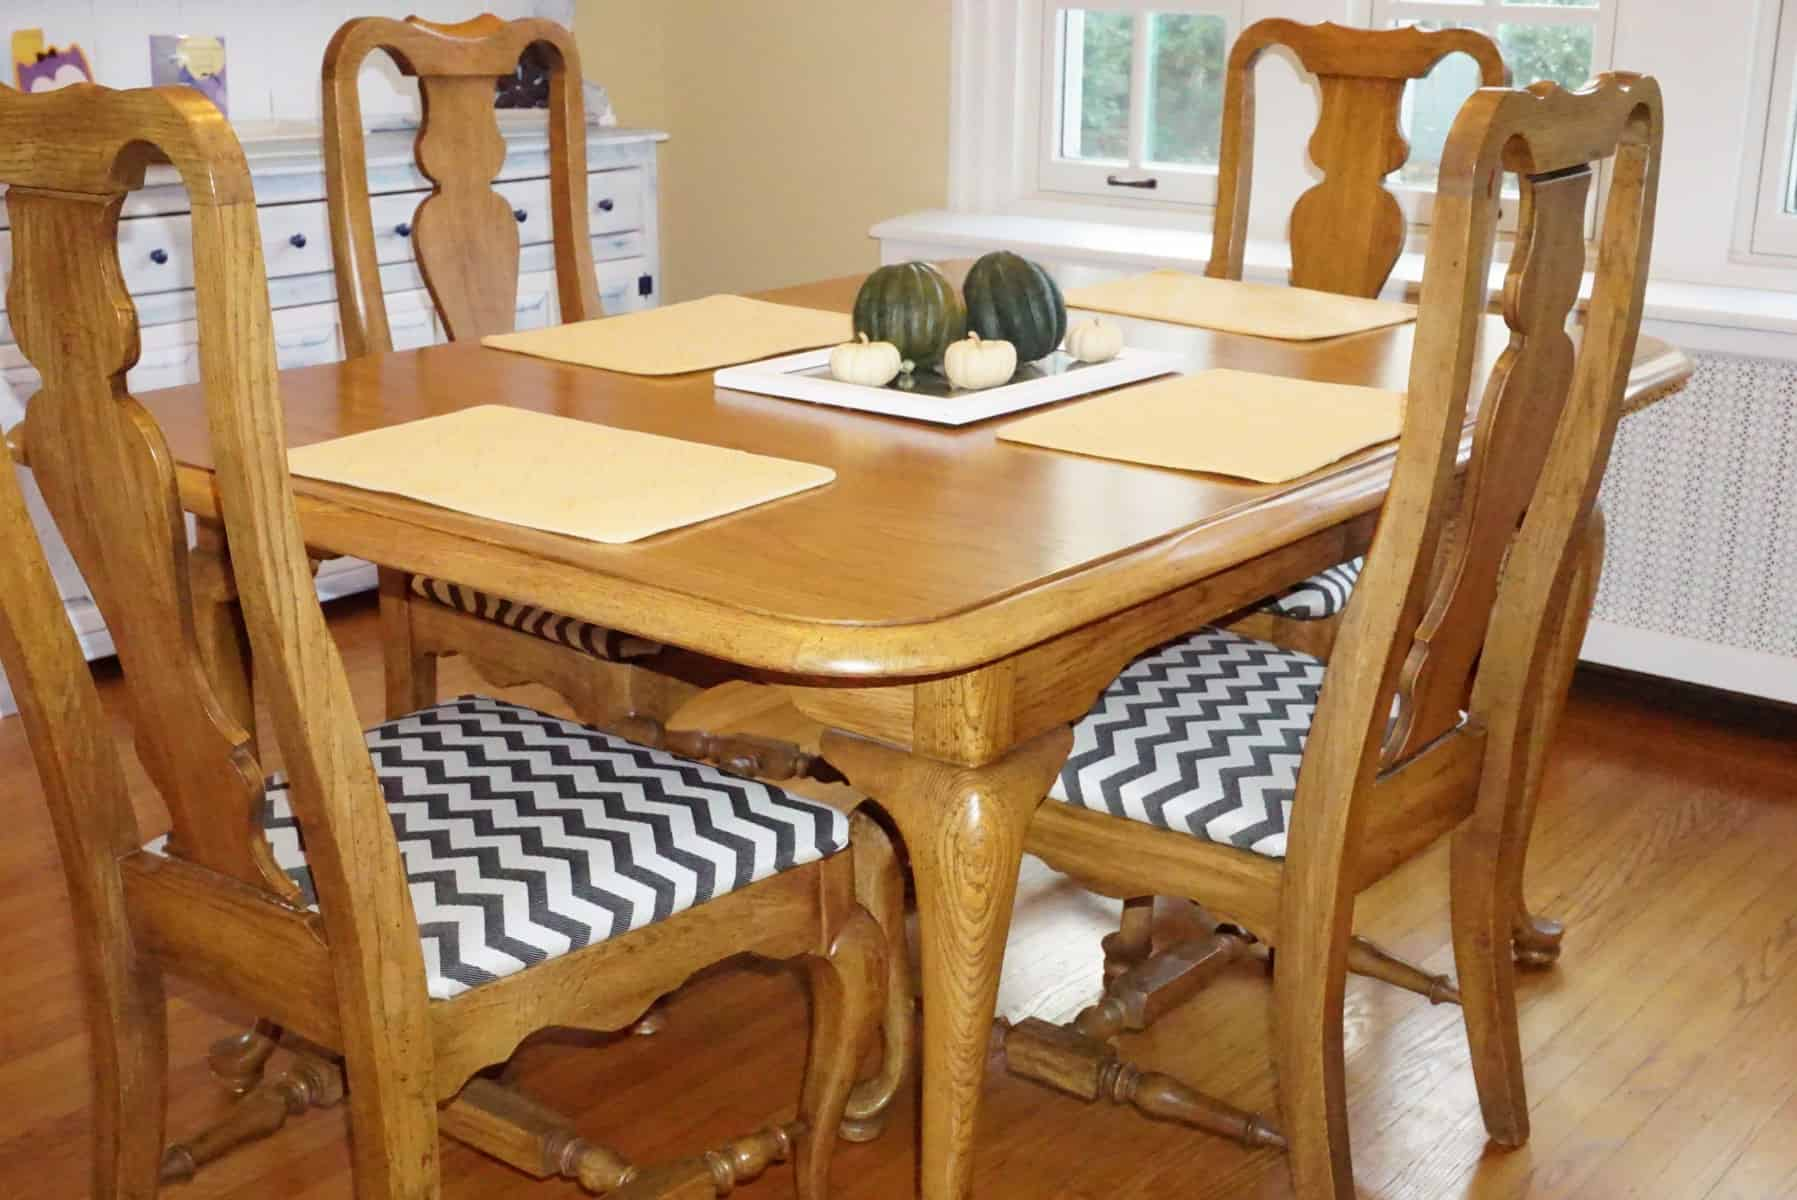 Seat Cushions For Dining Room Chairs How To Reupholster Dining Room Chair Seat Covers Sitting